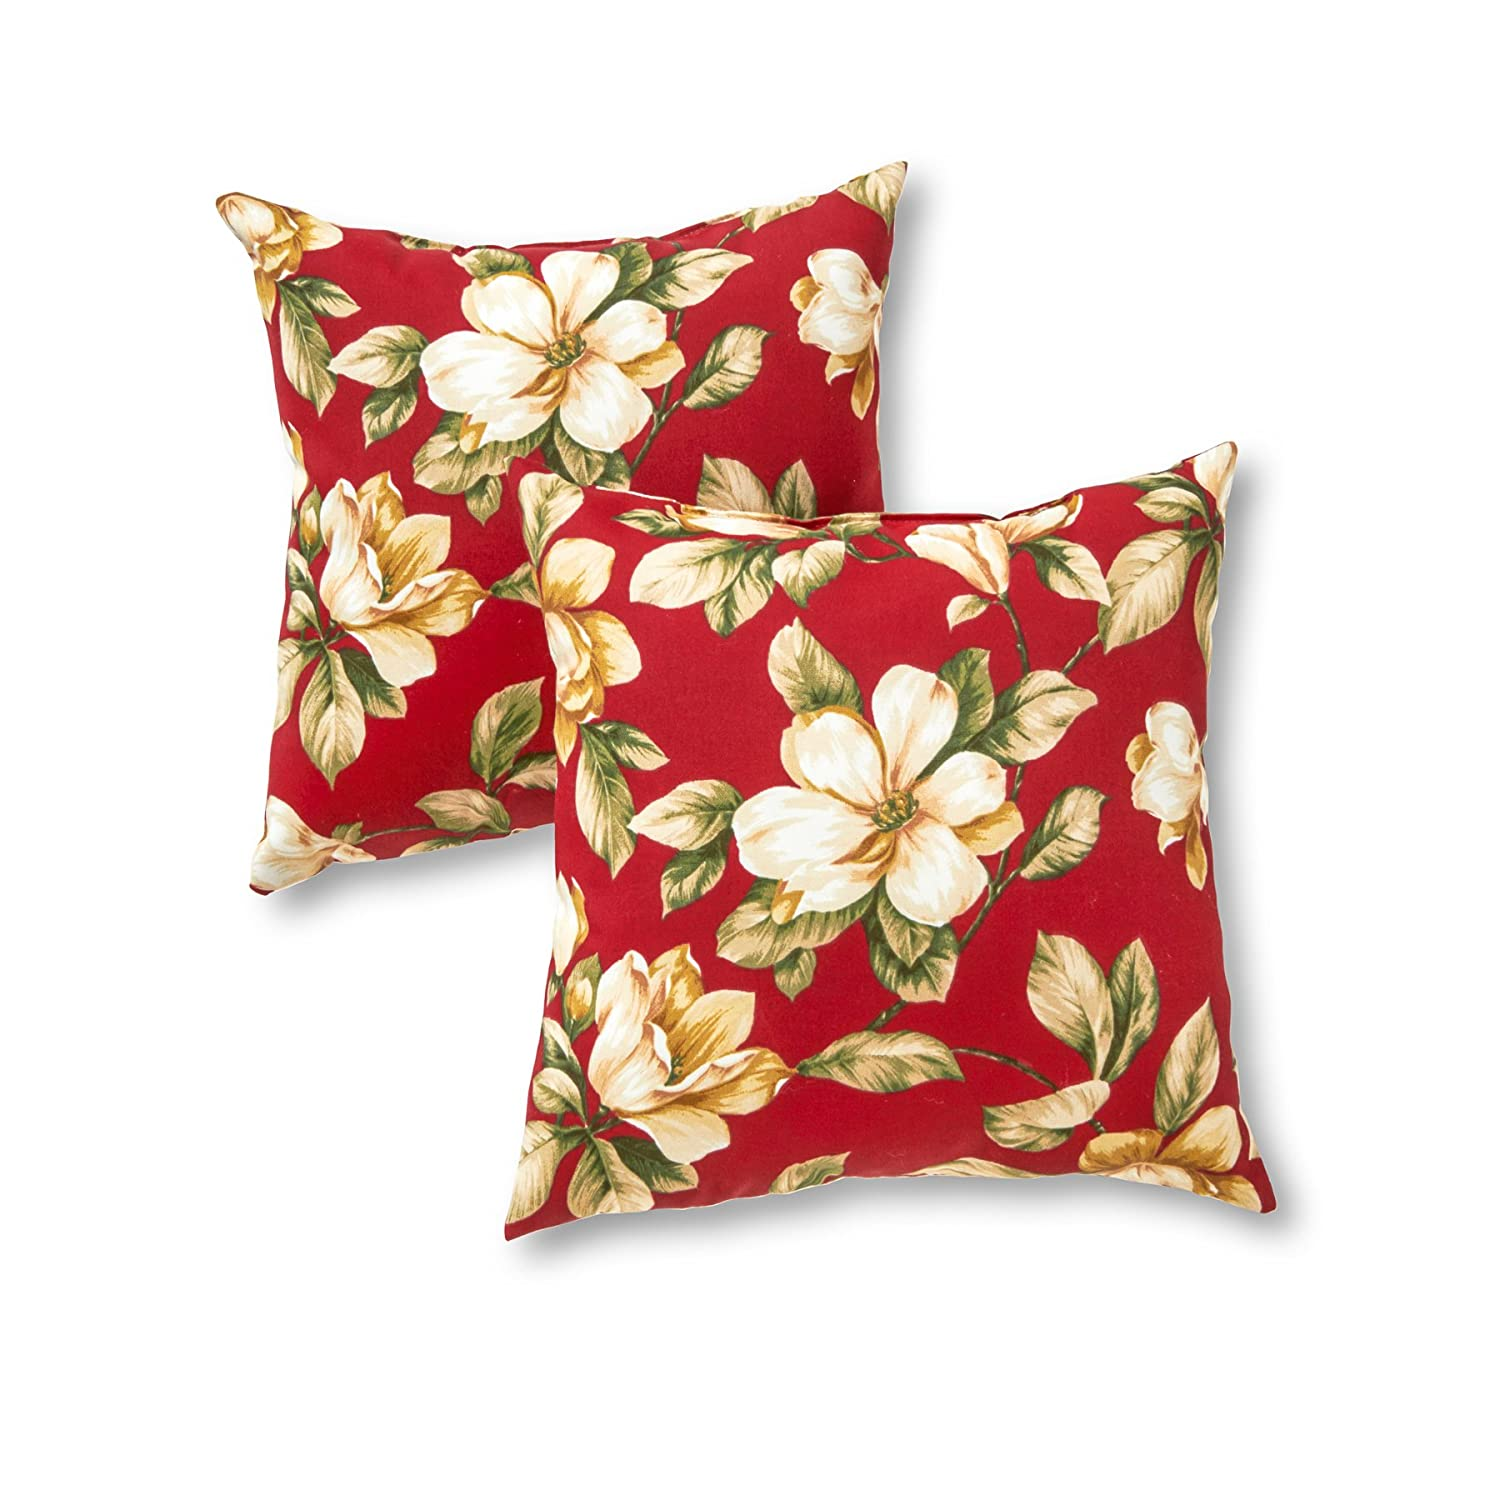 Throw Pillows In Abuja : Home Indoor Outdoor Accent Pillows Decorative Designer Decorator Set of 2 New eBay